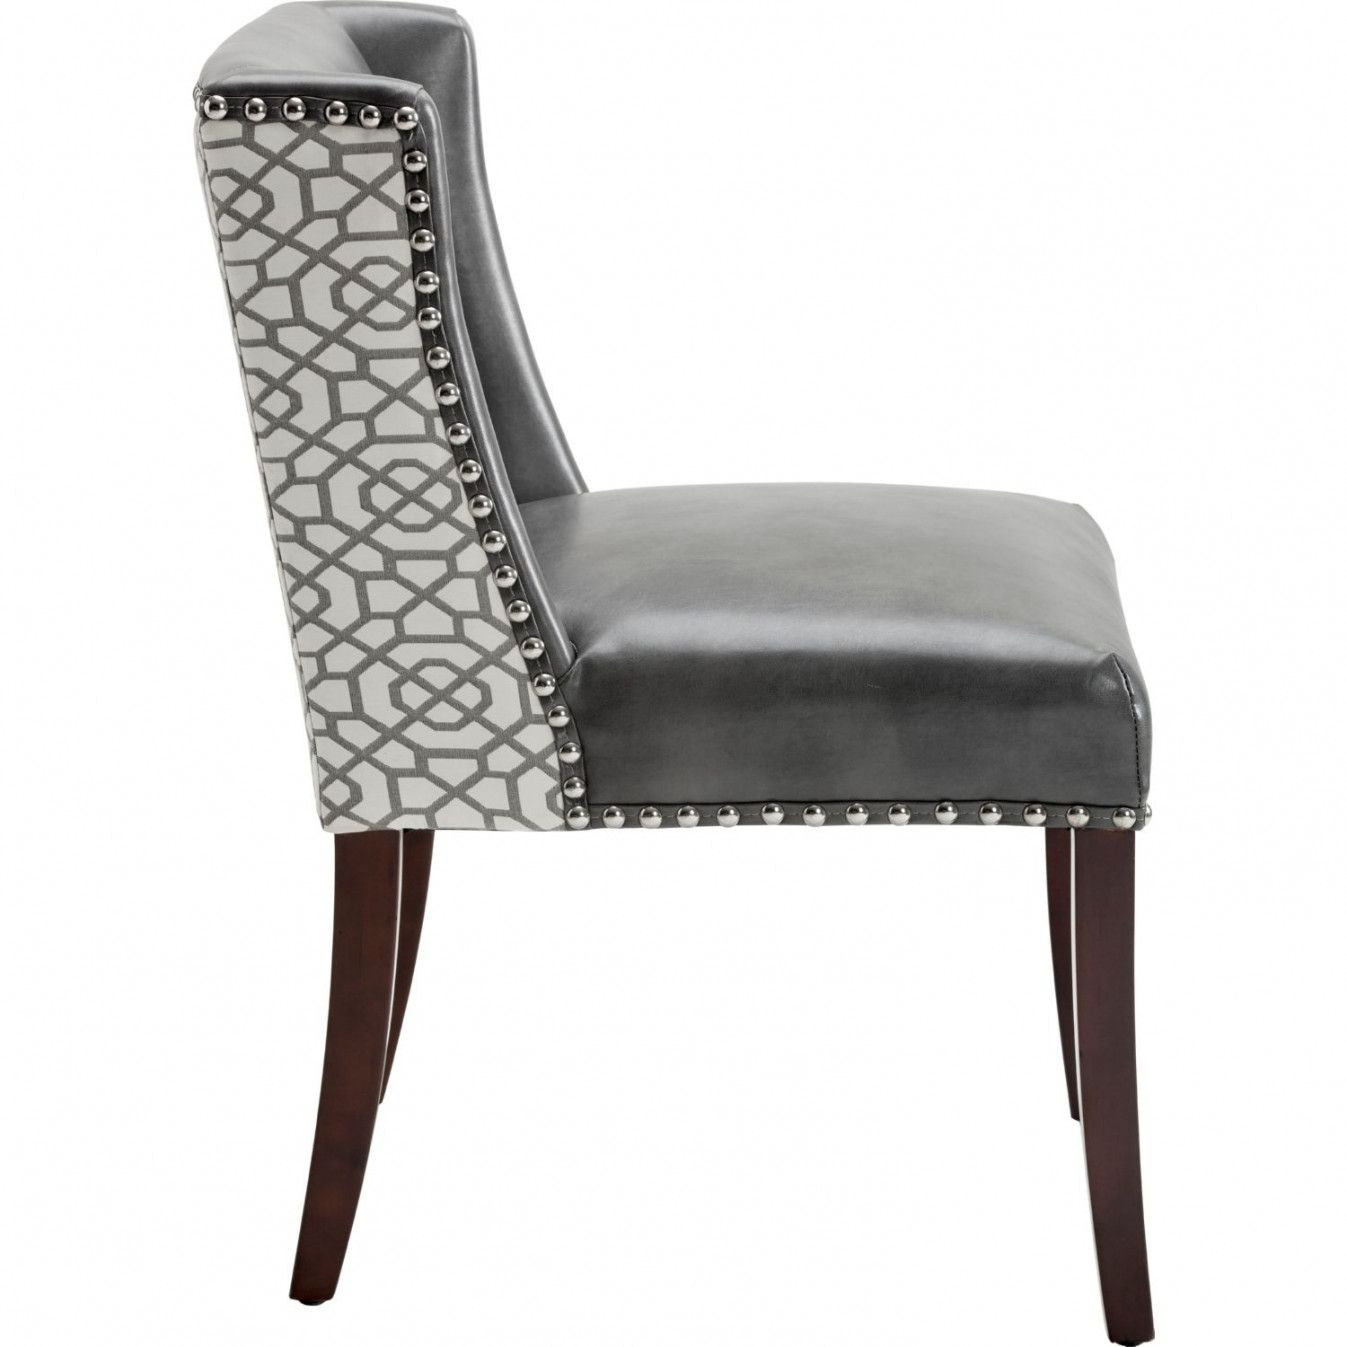 55 Leather And Fabric Dining Chairs Modern Clic Furniture Check More At Http